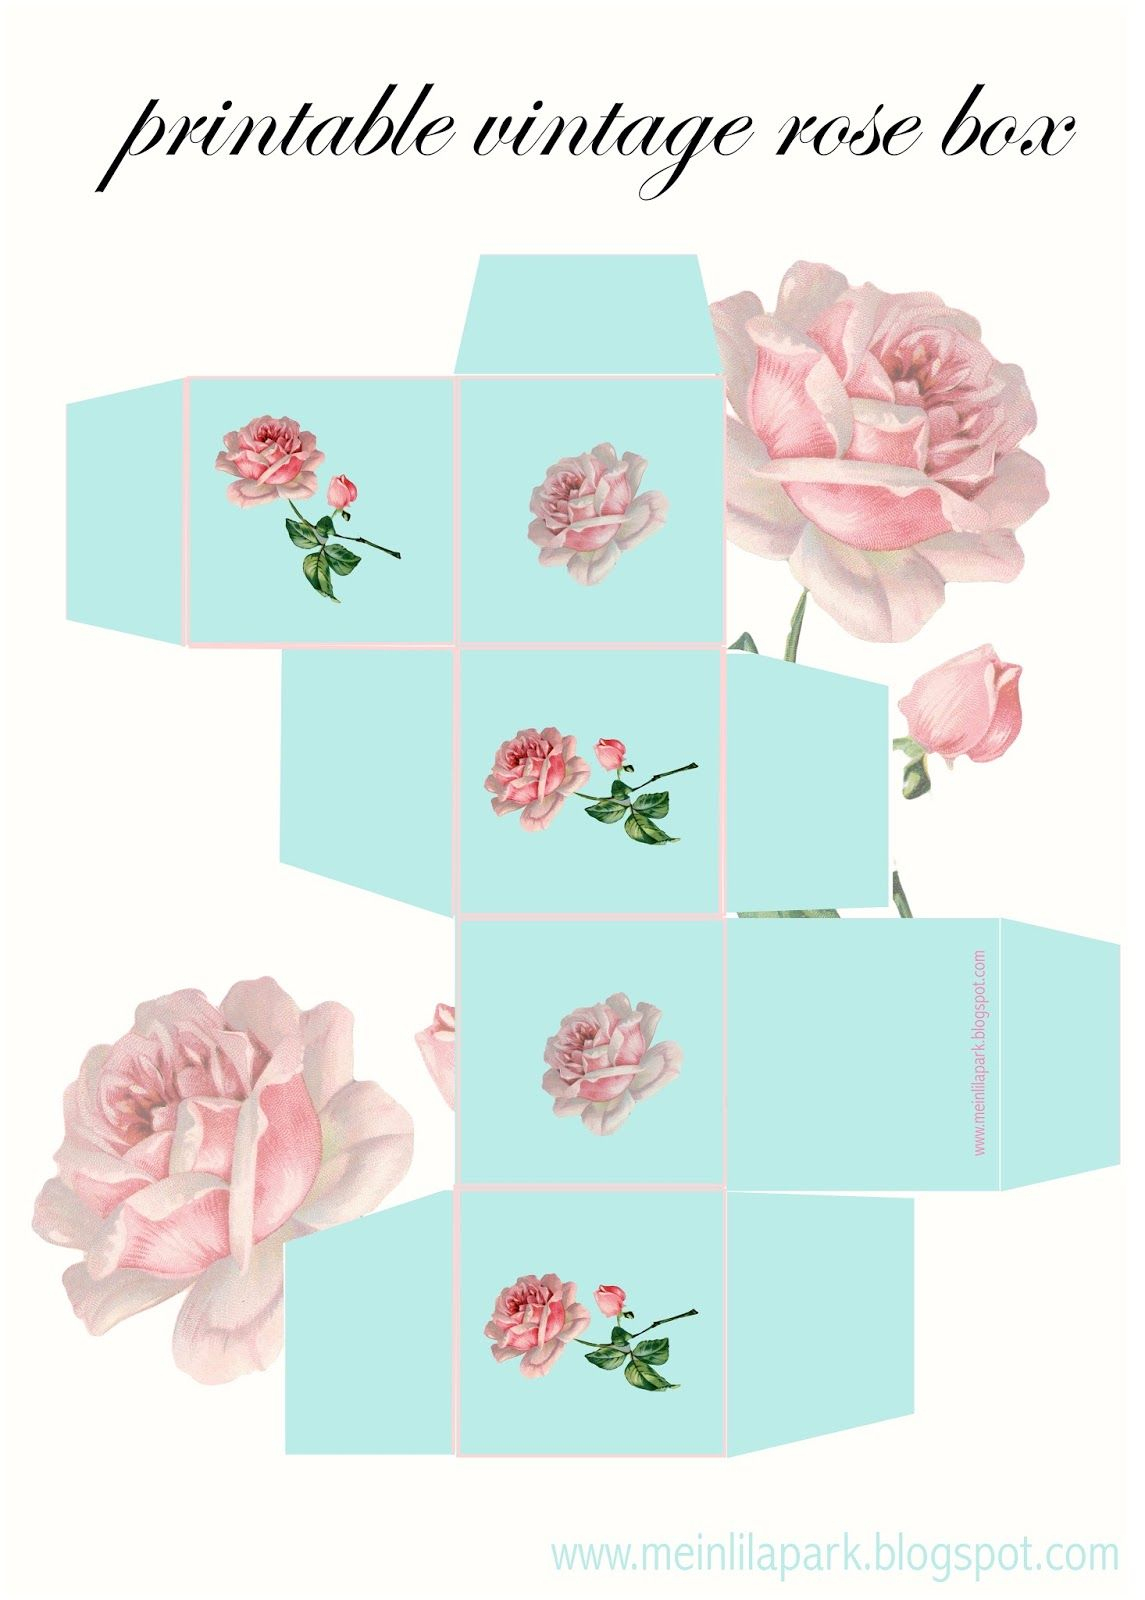 Meinlilapark – Diy Printables And Downloads: Free Printable Vintage - Free Printable Gift Boxes